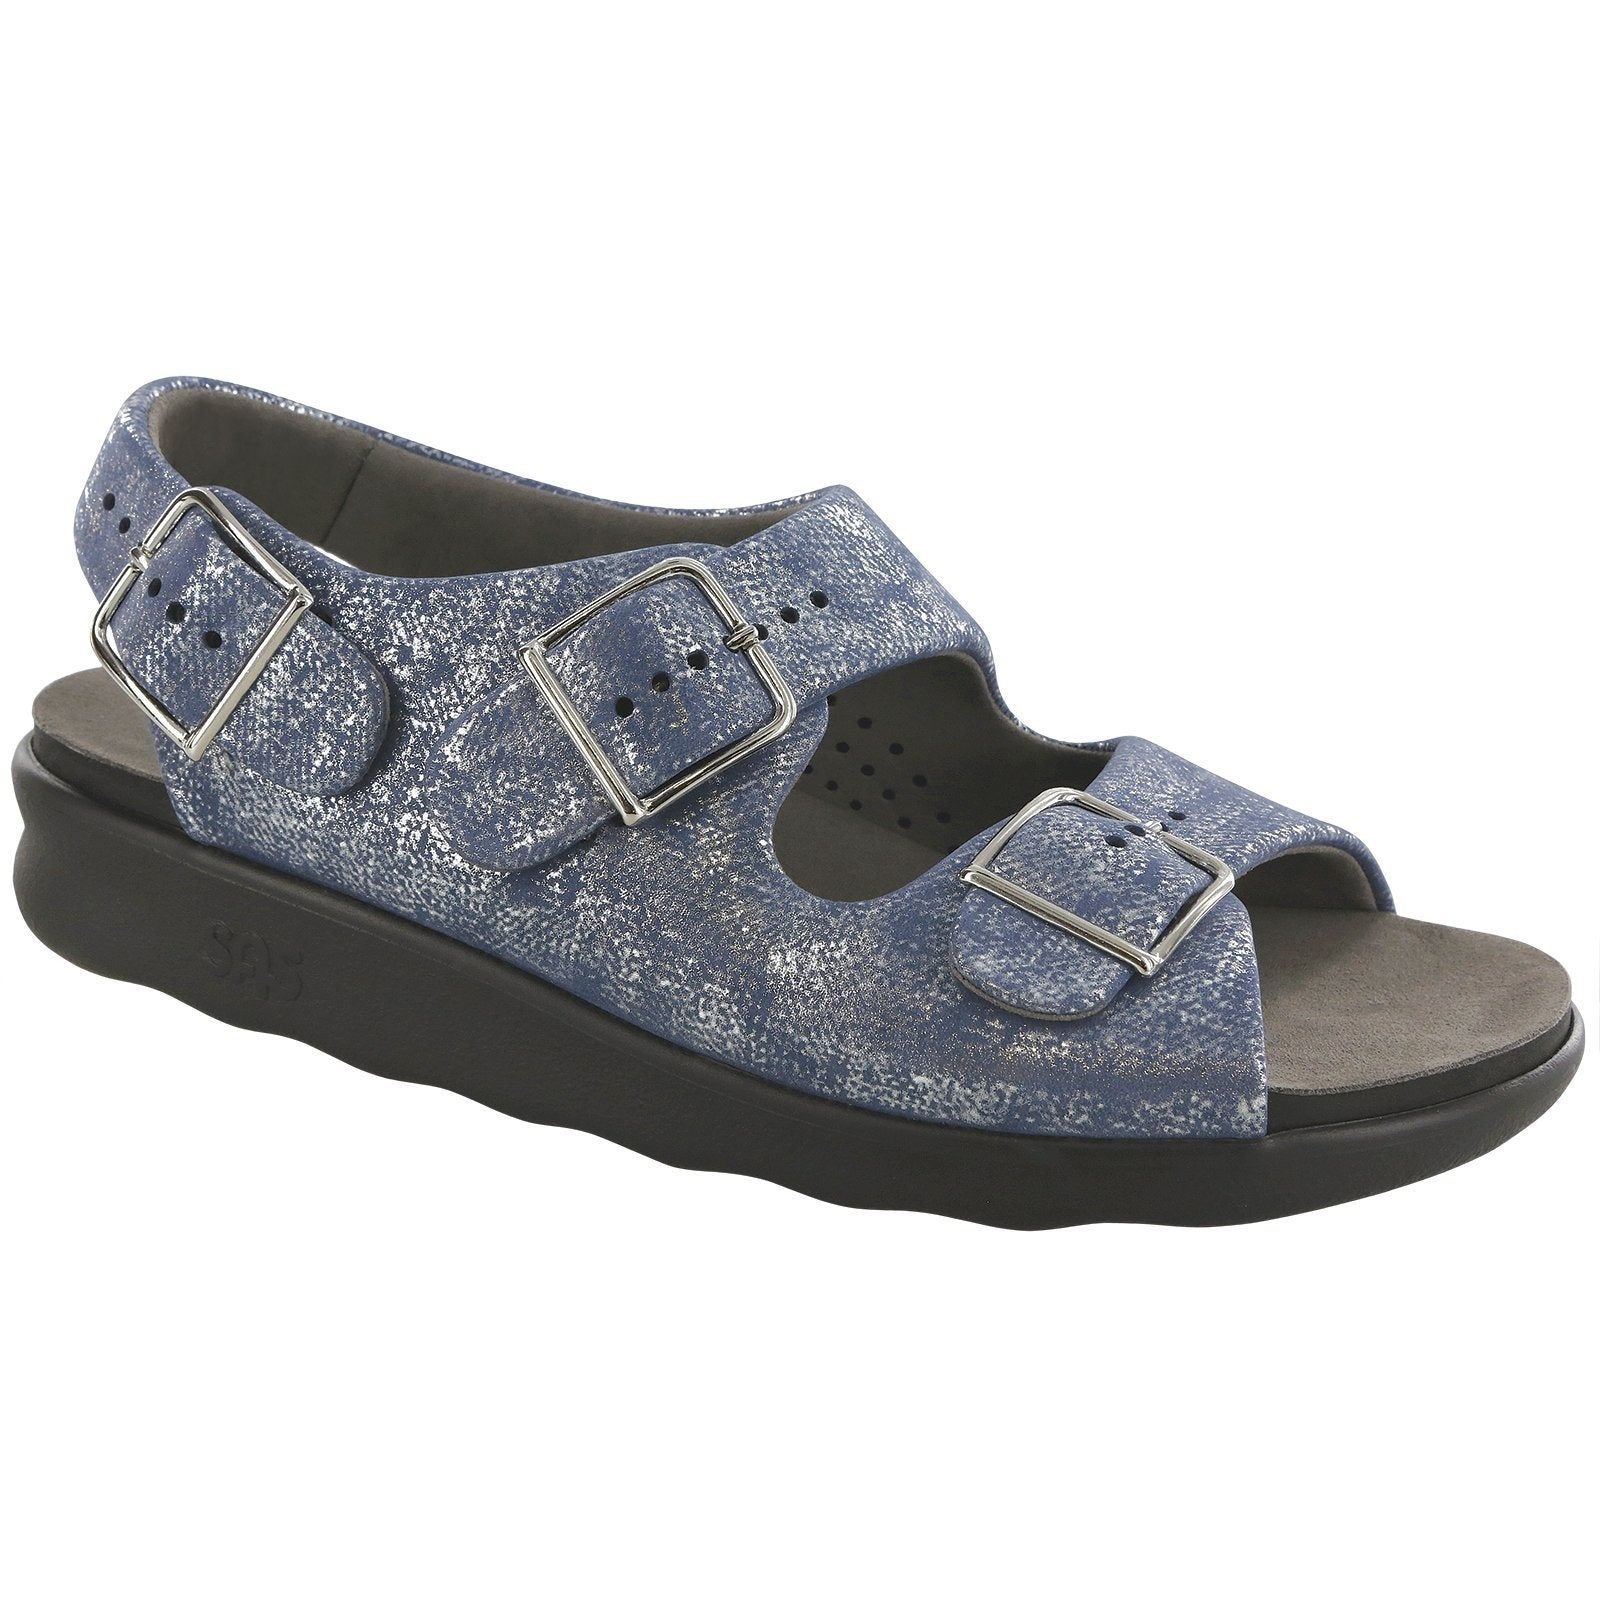 SAS Shoes Relaxed Silver Blue: Comfort Women's Sandals